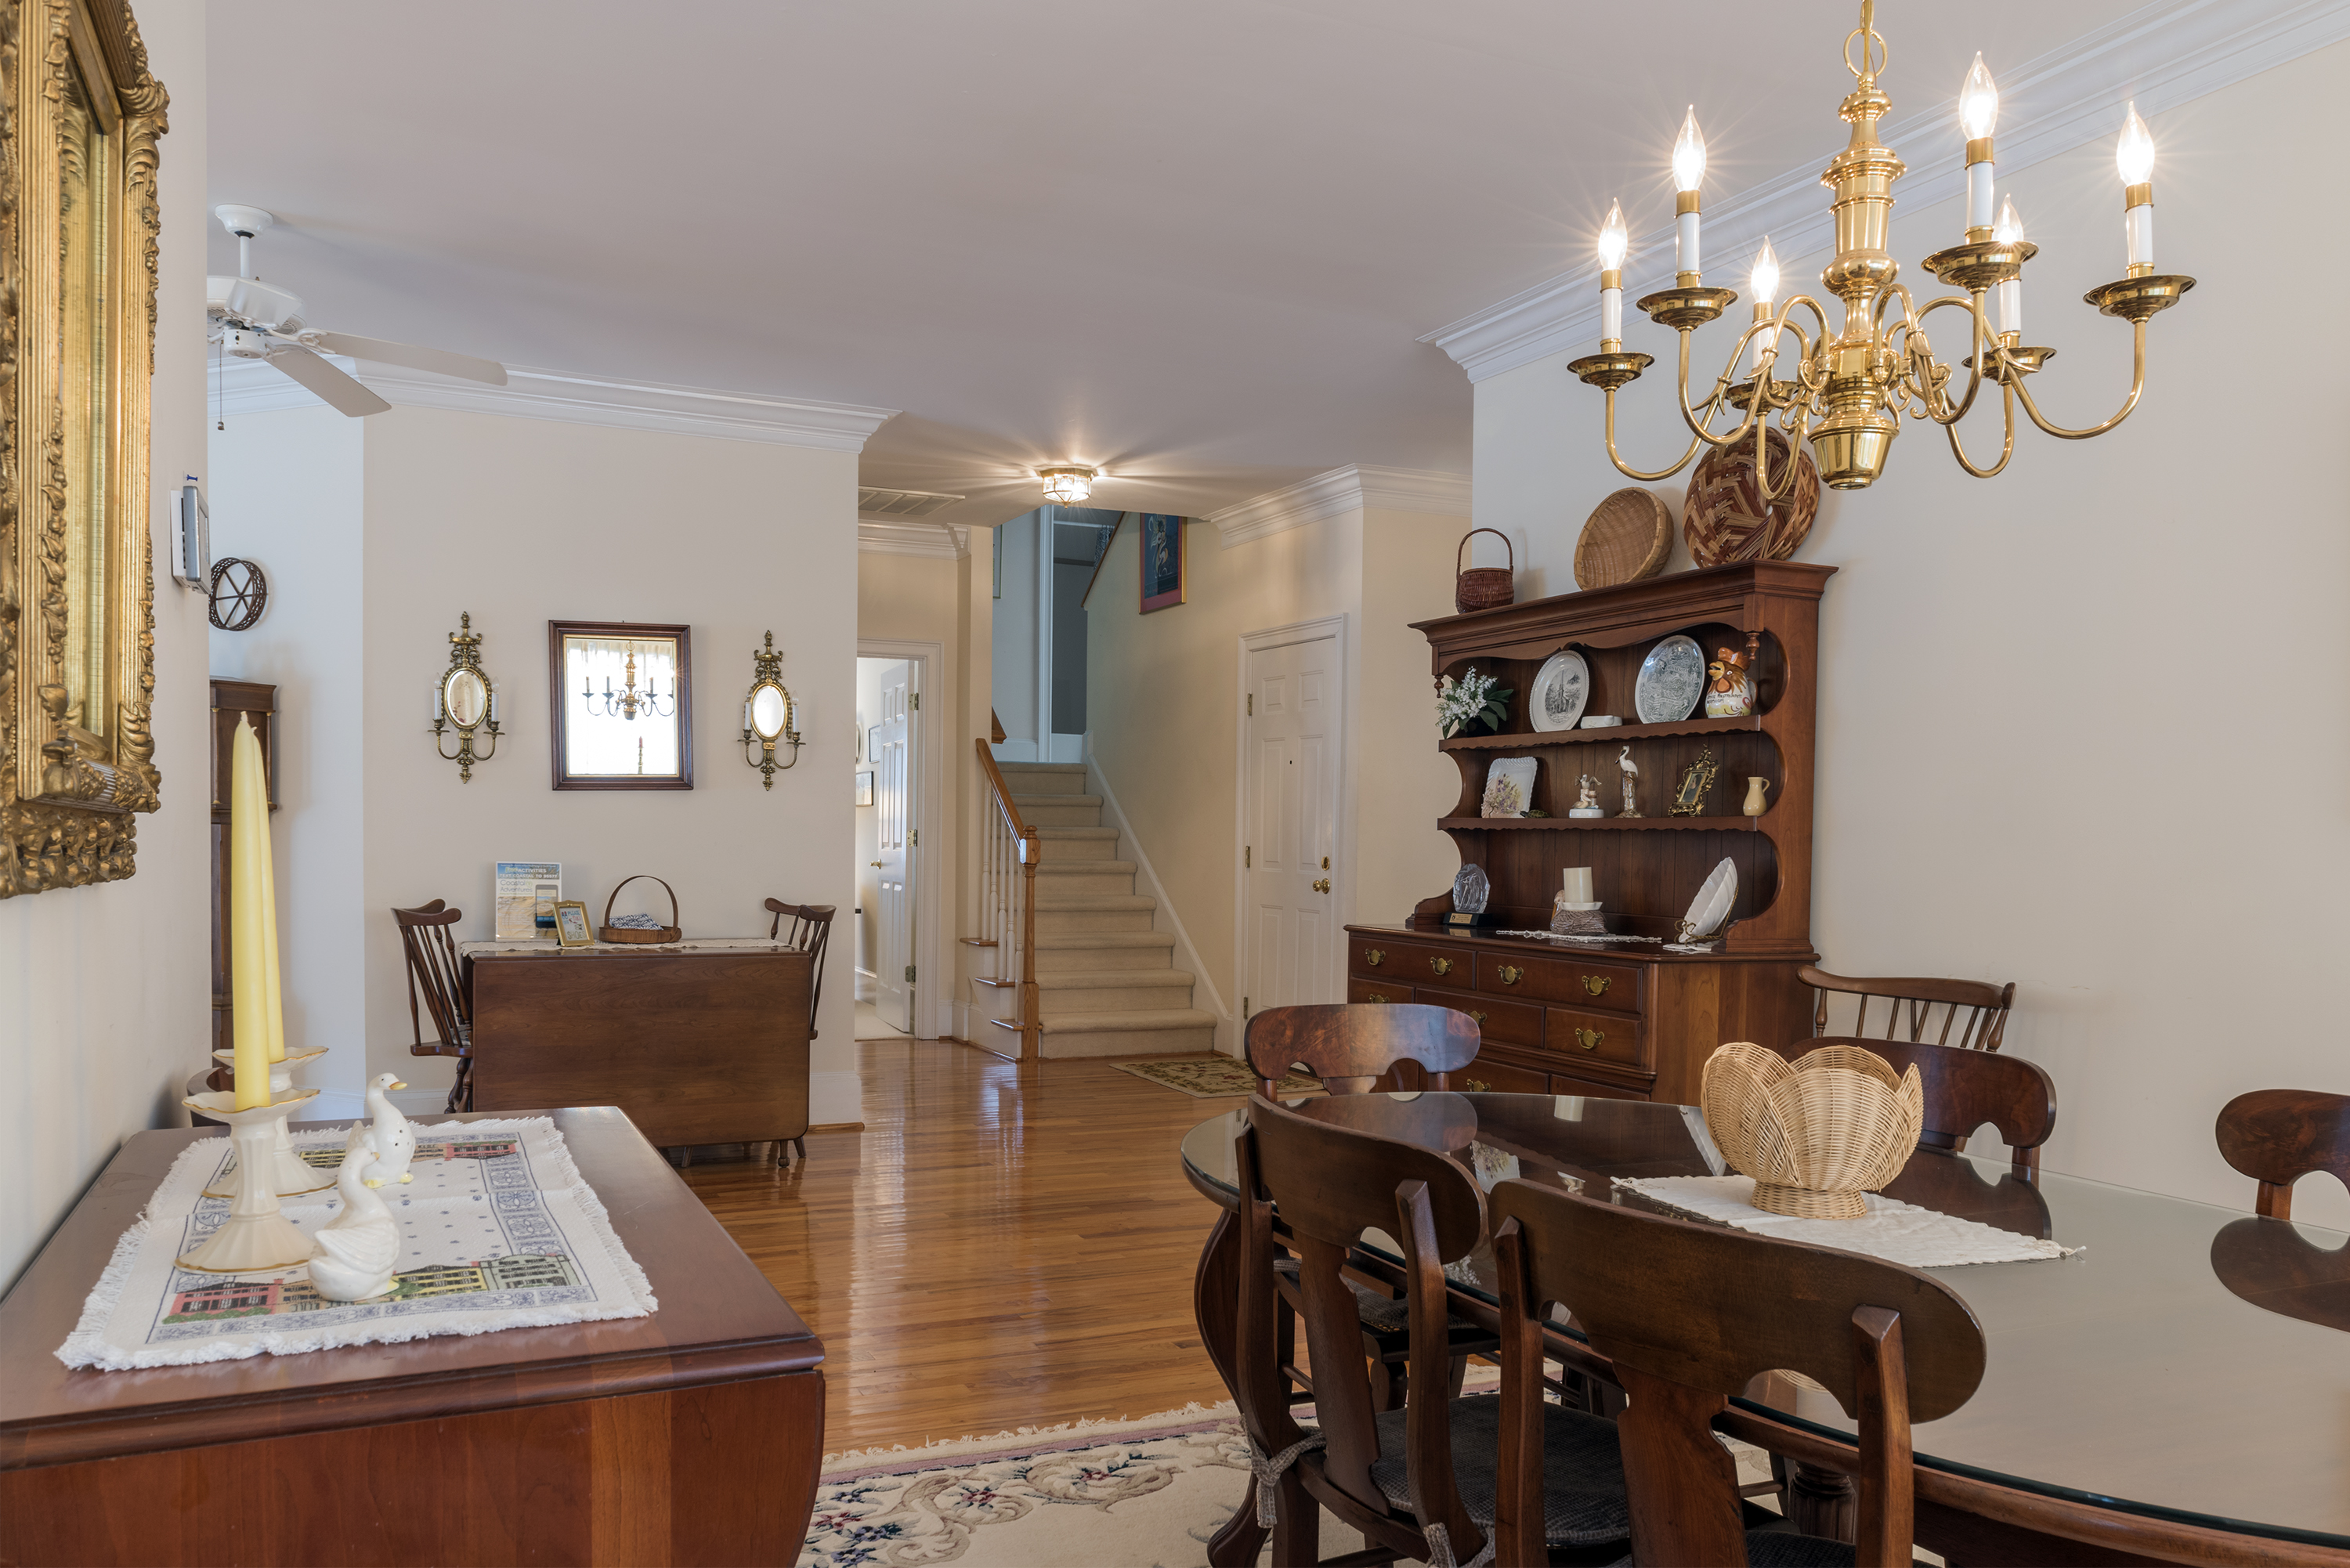 The formal dining room is off the main entry hall.